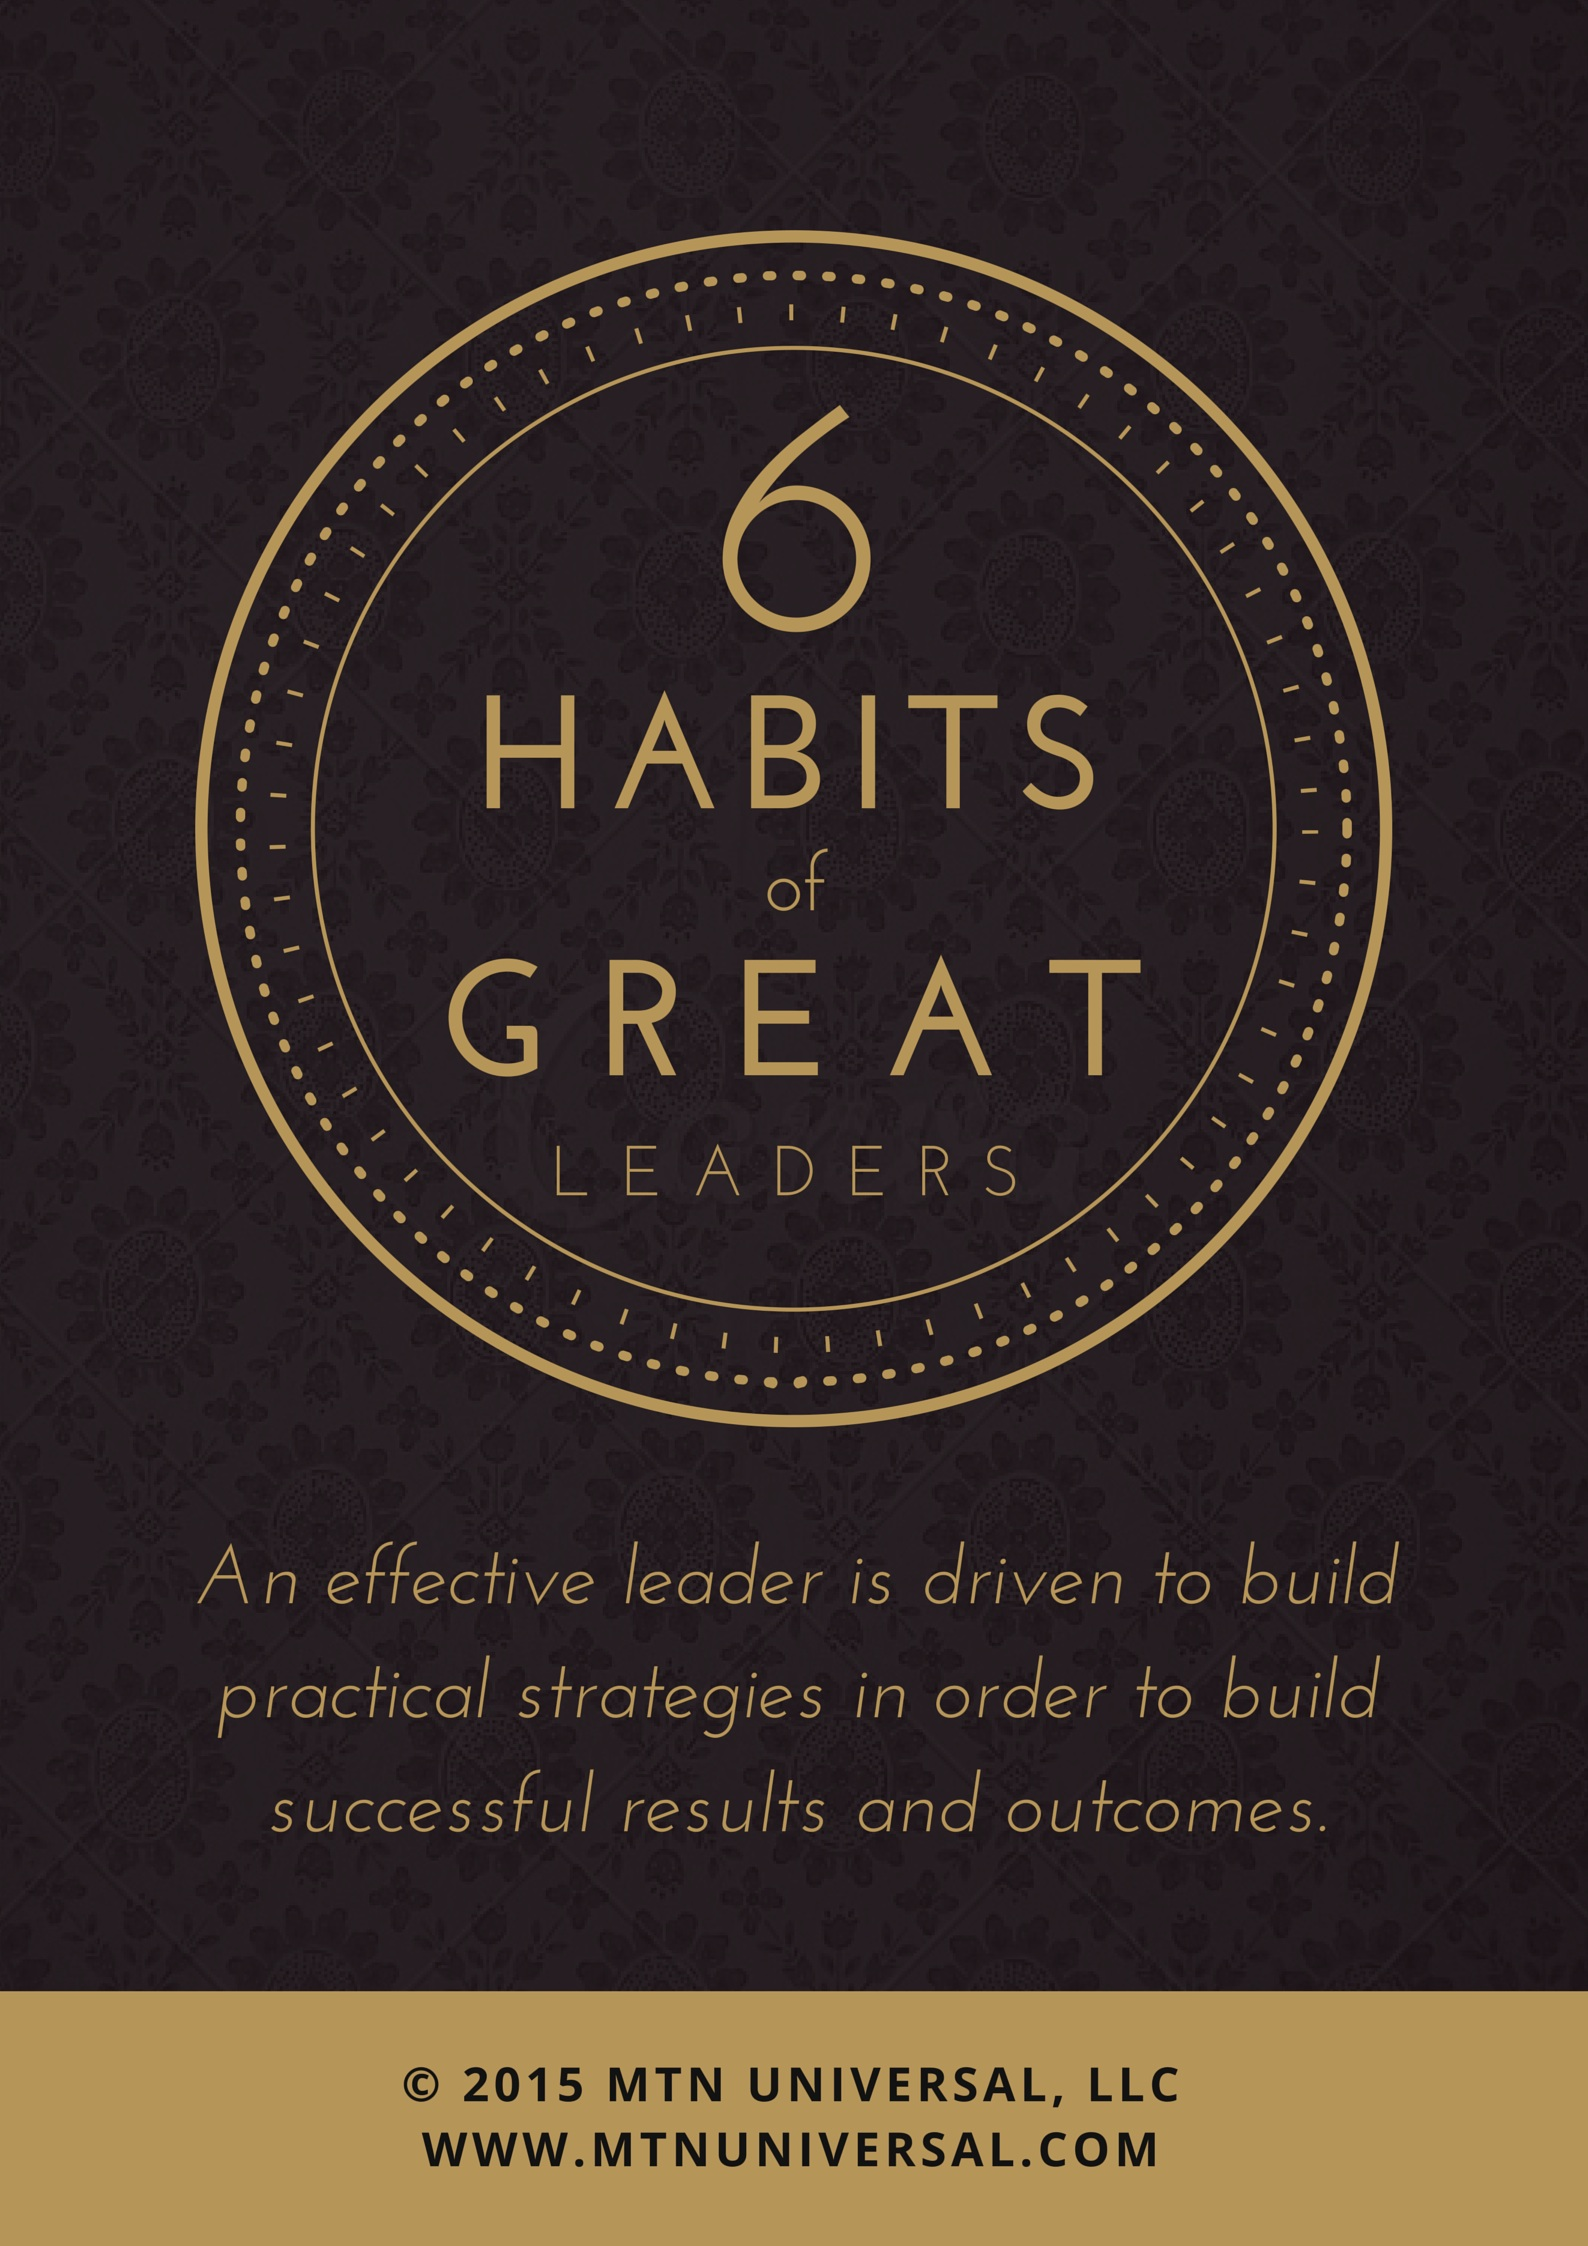 6-Habits-of-Great-Leaders.jpg